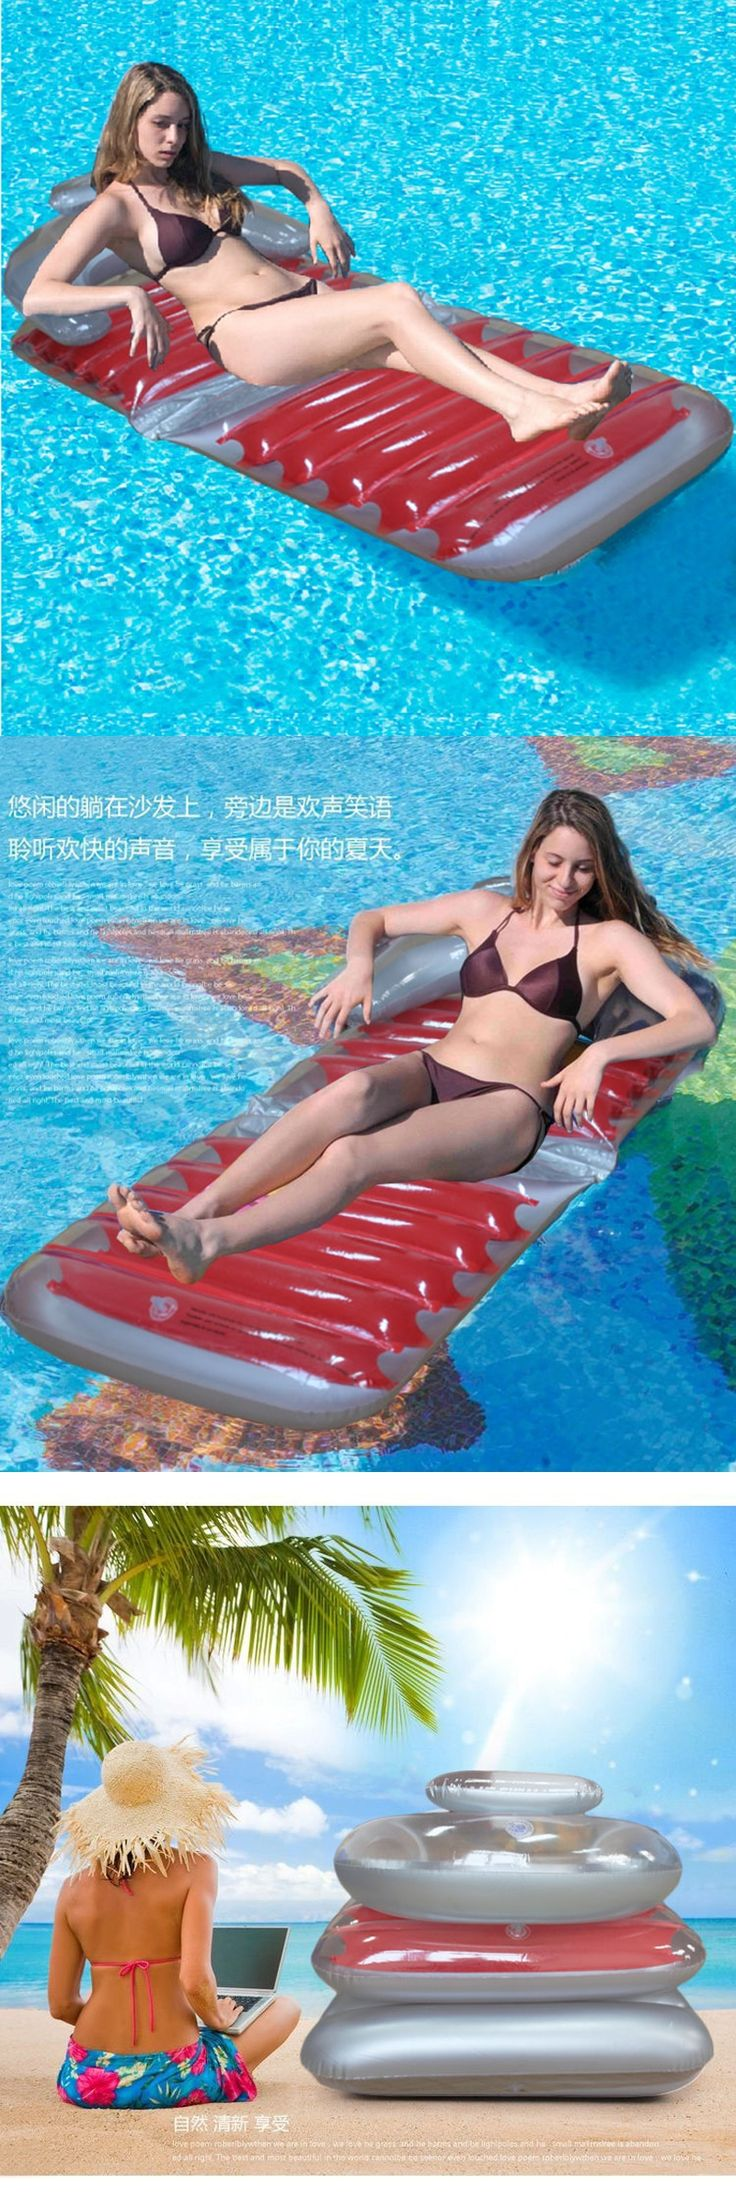 2017 New Foldable Red Inflatable Pool float Comfortable Inflated Chair Floating Bed Lounge Beach Pool Raft Air Mattress PVC